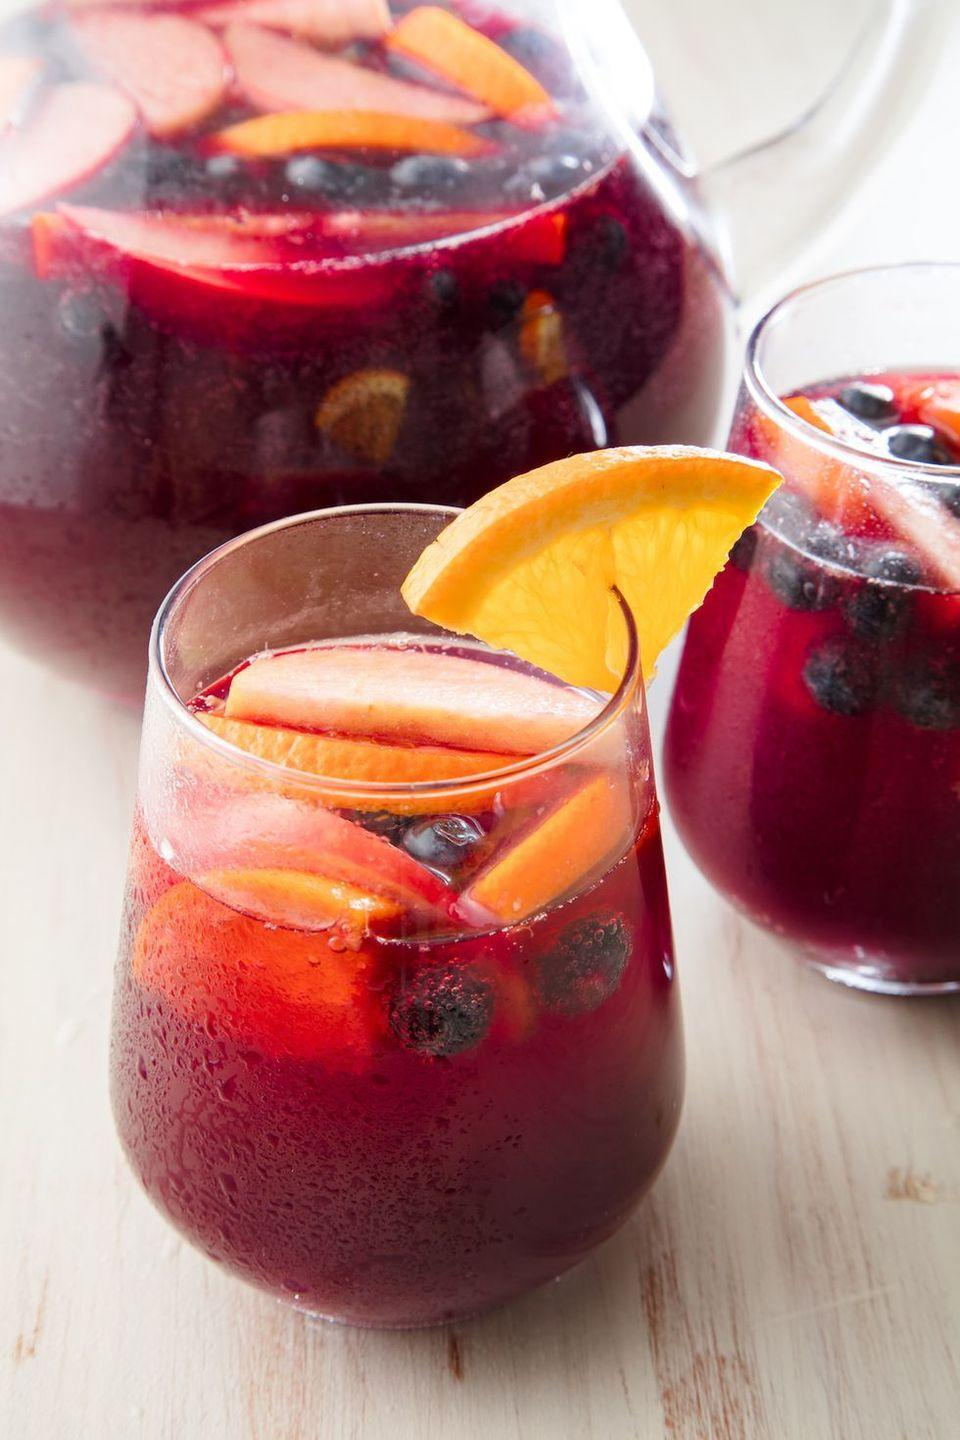 """<p>No one can turn down a good Sangria. </p><p>Get the recipe from <a href=""""https://www.delish.com/cooking/recipe-ideas/a19601715/easy-red-sangria-recipe/"""" rel=""""nofollow noopener"""" target=""""_blank"""" data-ylk=""""slk:Delish"""" class=""""link rapid-noclick-resp"""">Delish</a>. </p>"""